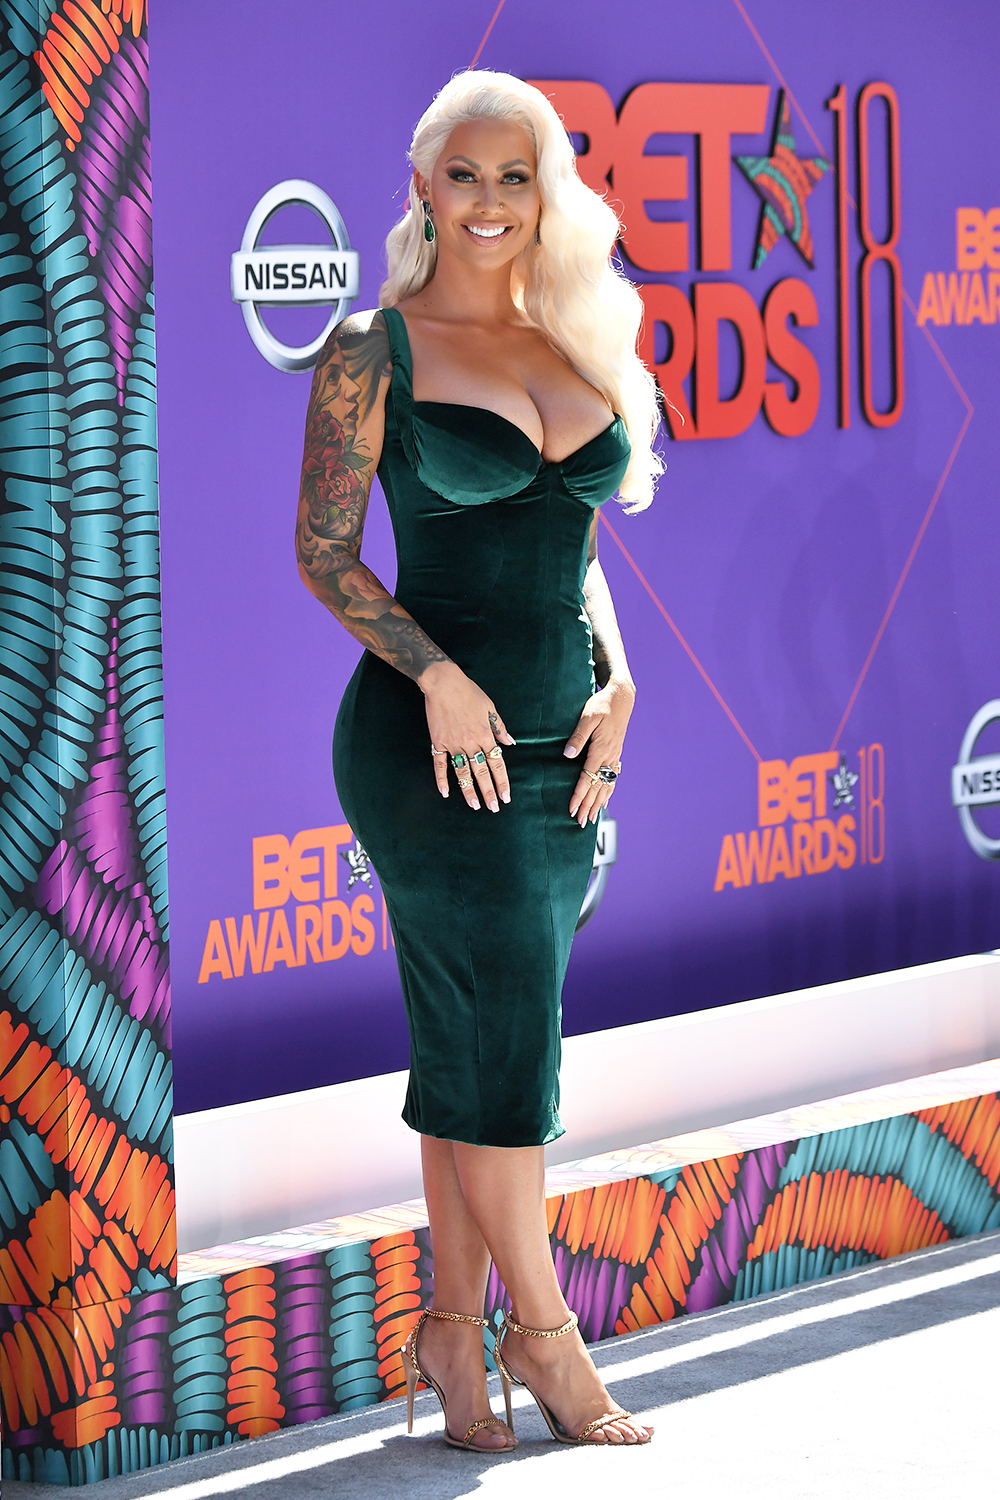 Amber Rose stuns in an old Hollywood inspired look. I'm so used to seeing her bald, I almost didn't recognize her.